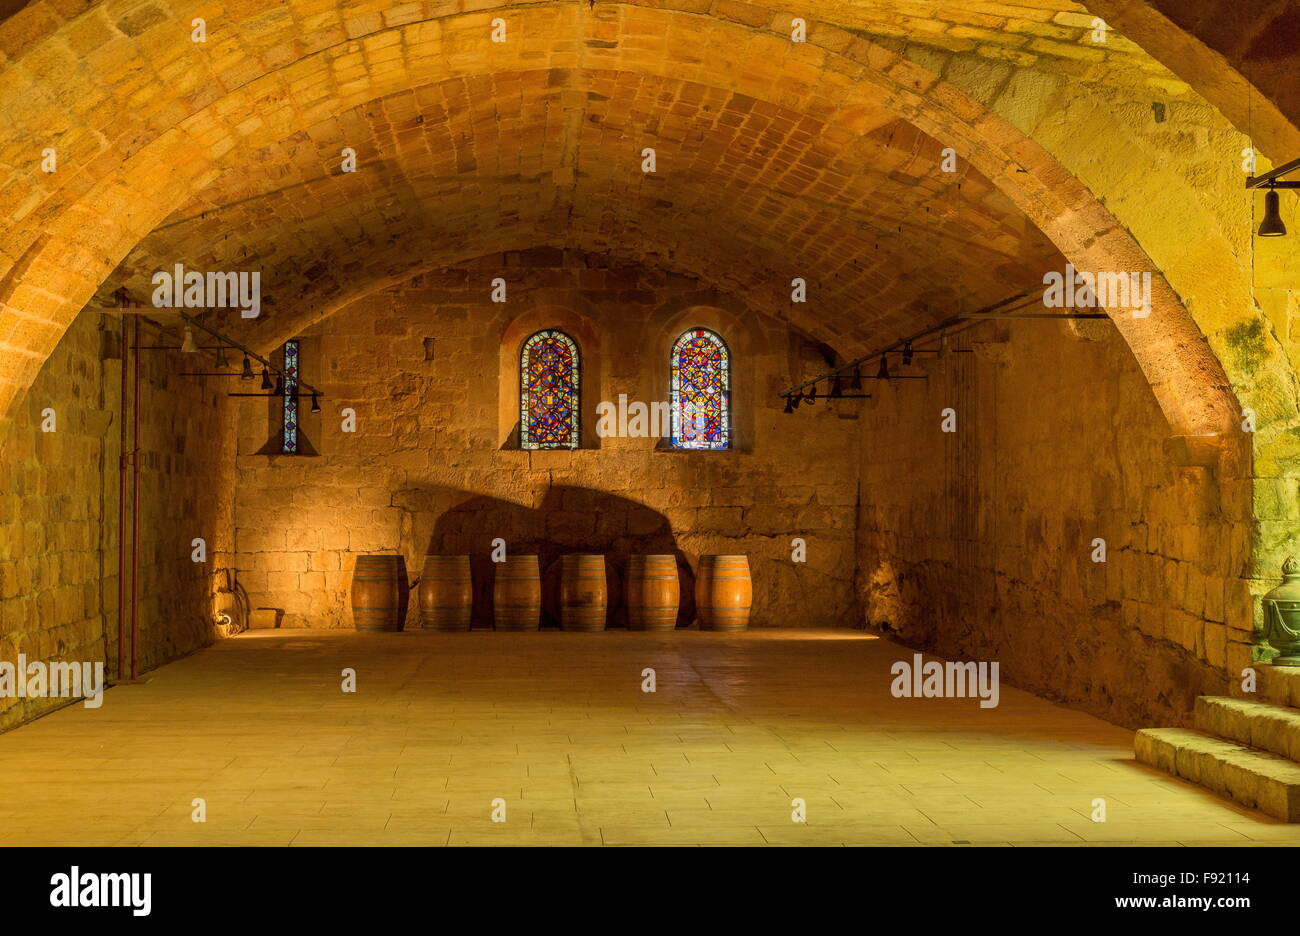 The cellar, cellier at L'Abbaye Sainte-Marie de Fontfroide, or Fontfroide Abbey, near Narbonne, SW France. Stock Photo